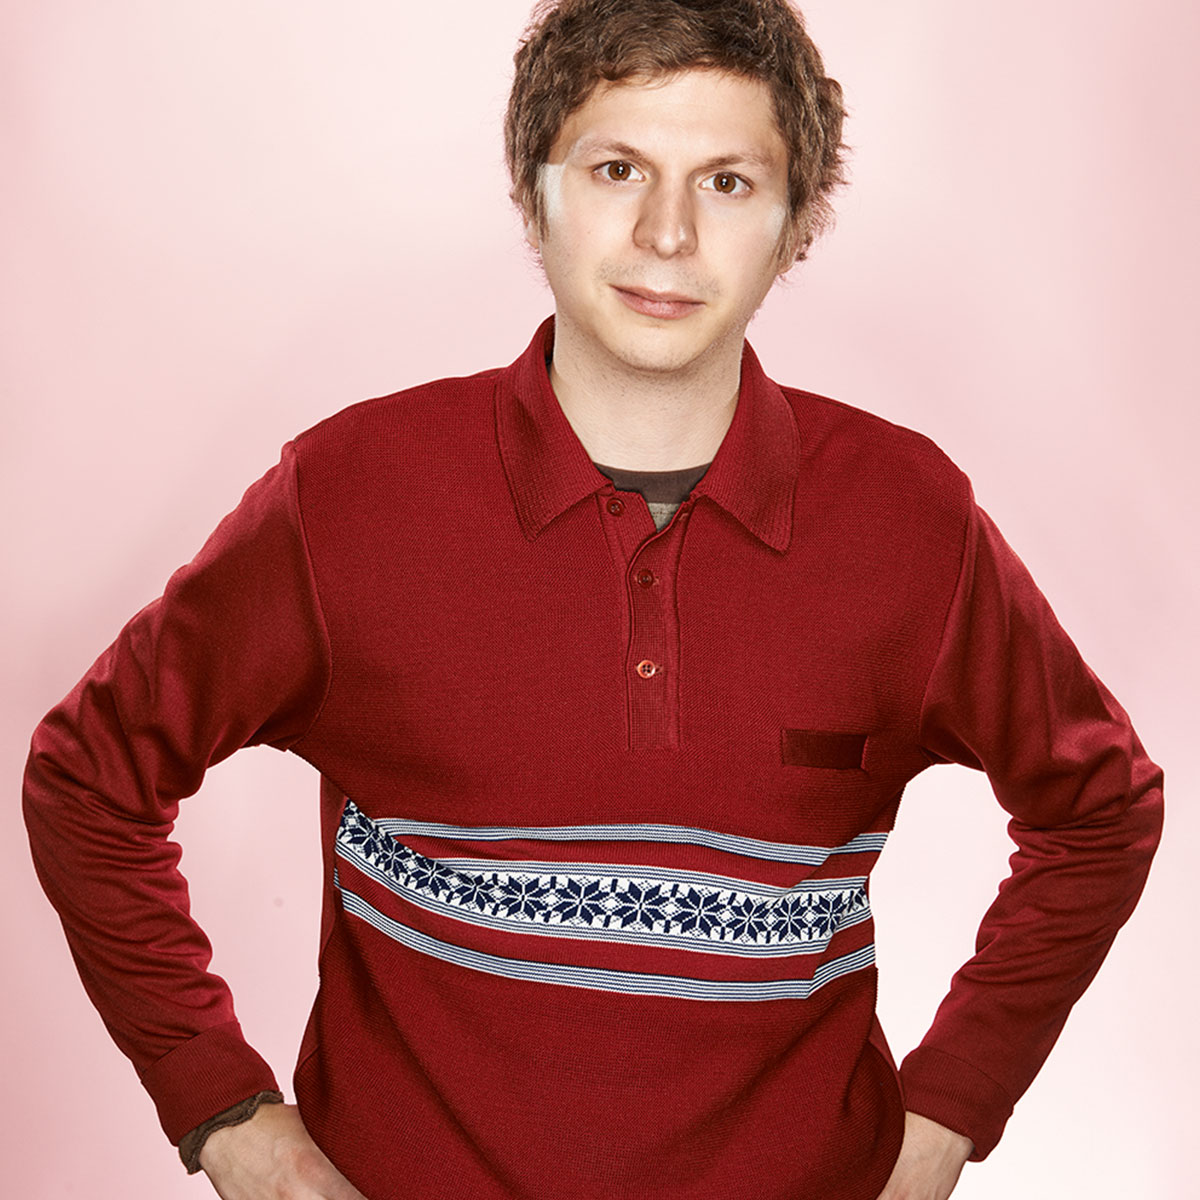 Entertainment Weekly feature on Sundance: Michael Cera shot by Christopher Beyer